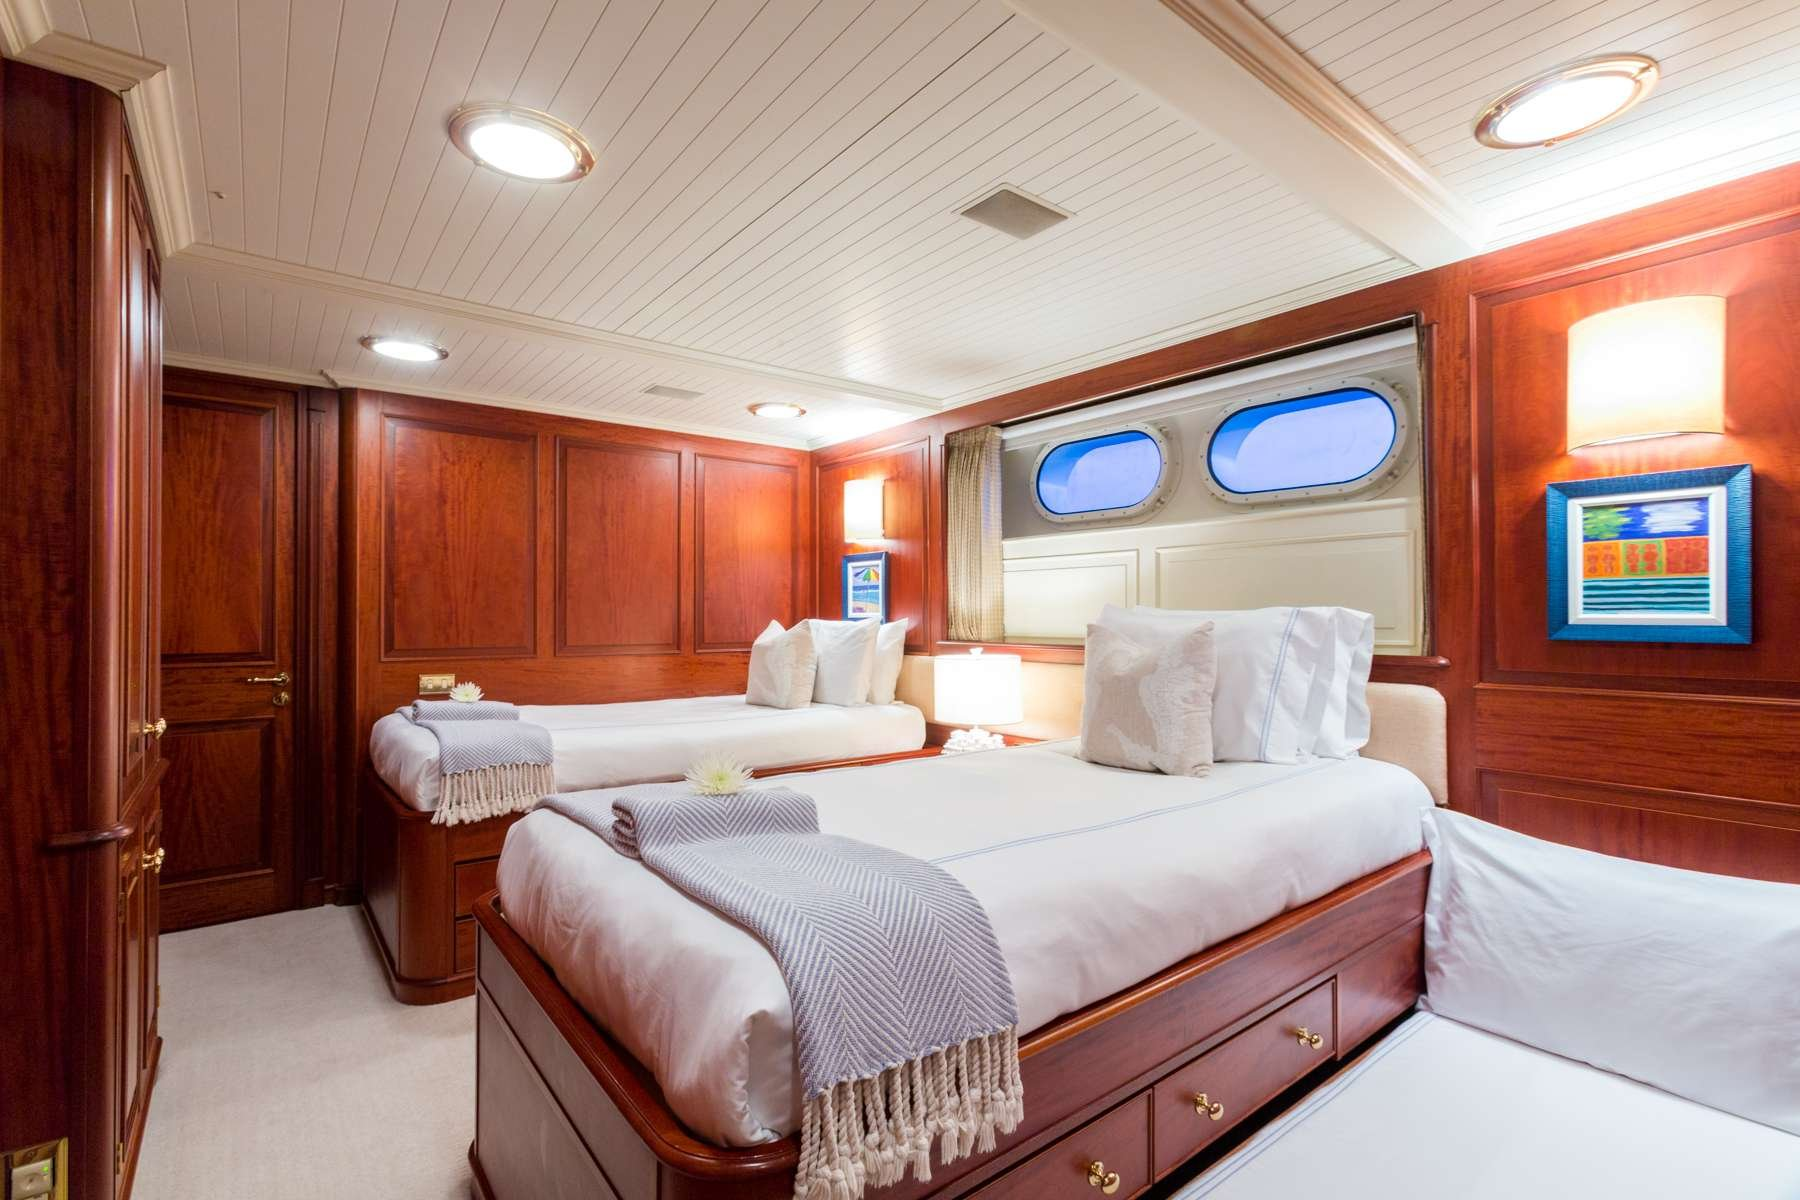 Motor Yacht 'LADY J' Twins (convert to King) plus trundle, 12 PAX, 9 Crew, 142.00 Ft, 43.00 Meters, Built 1997, Palmer Johnson, Refit Year 2017